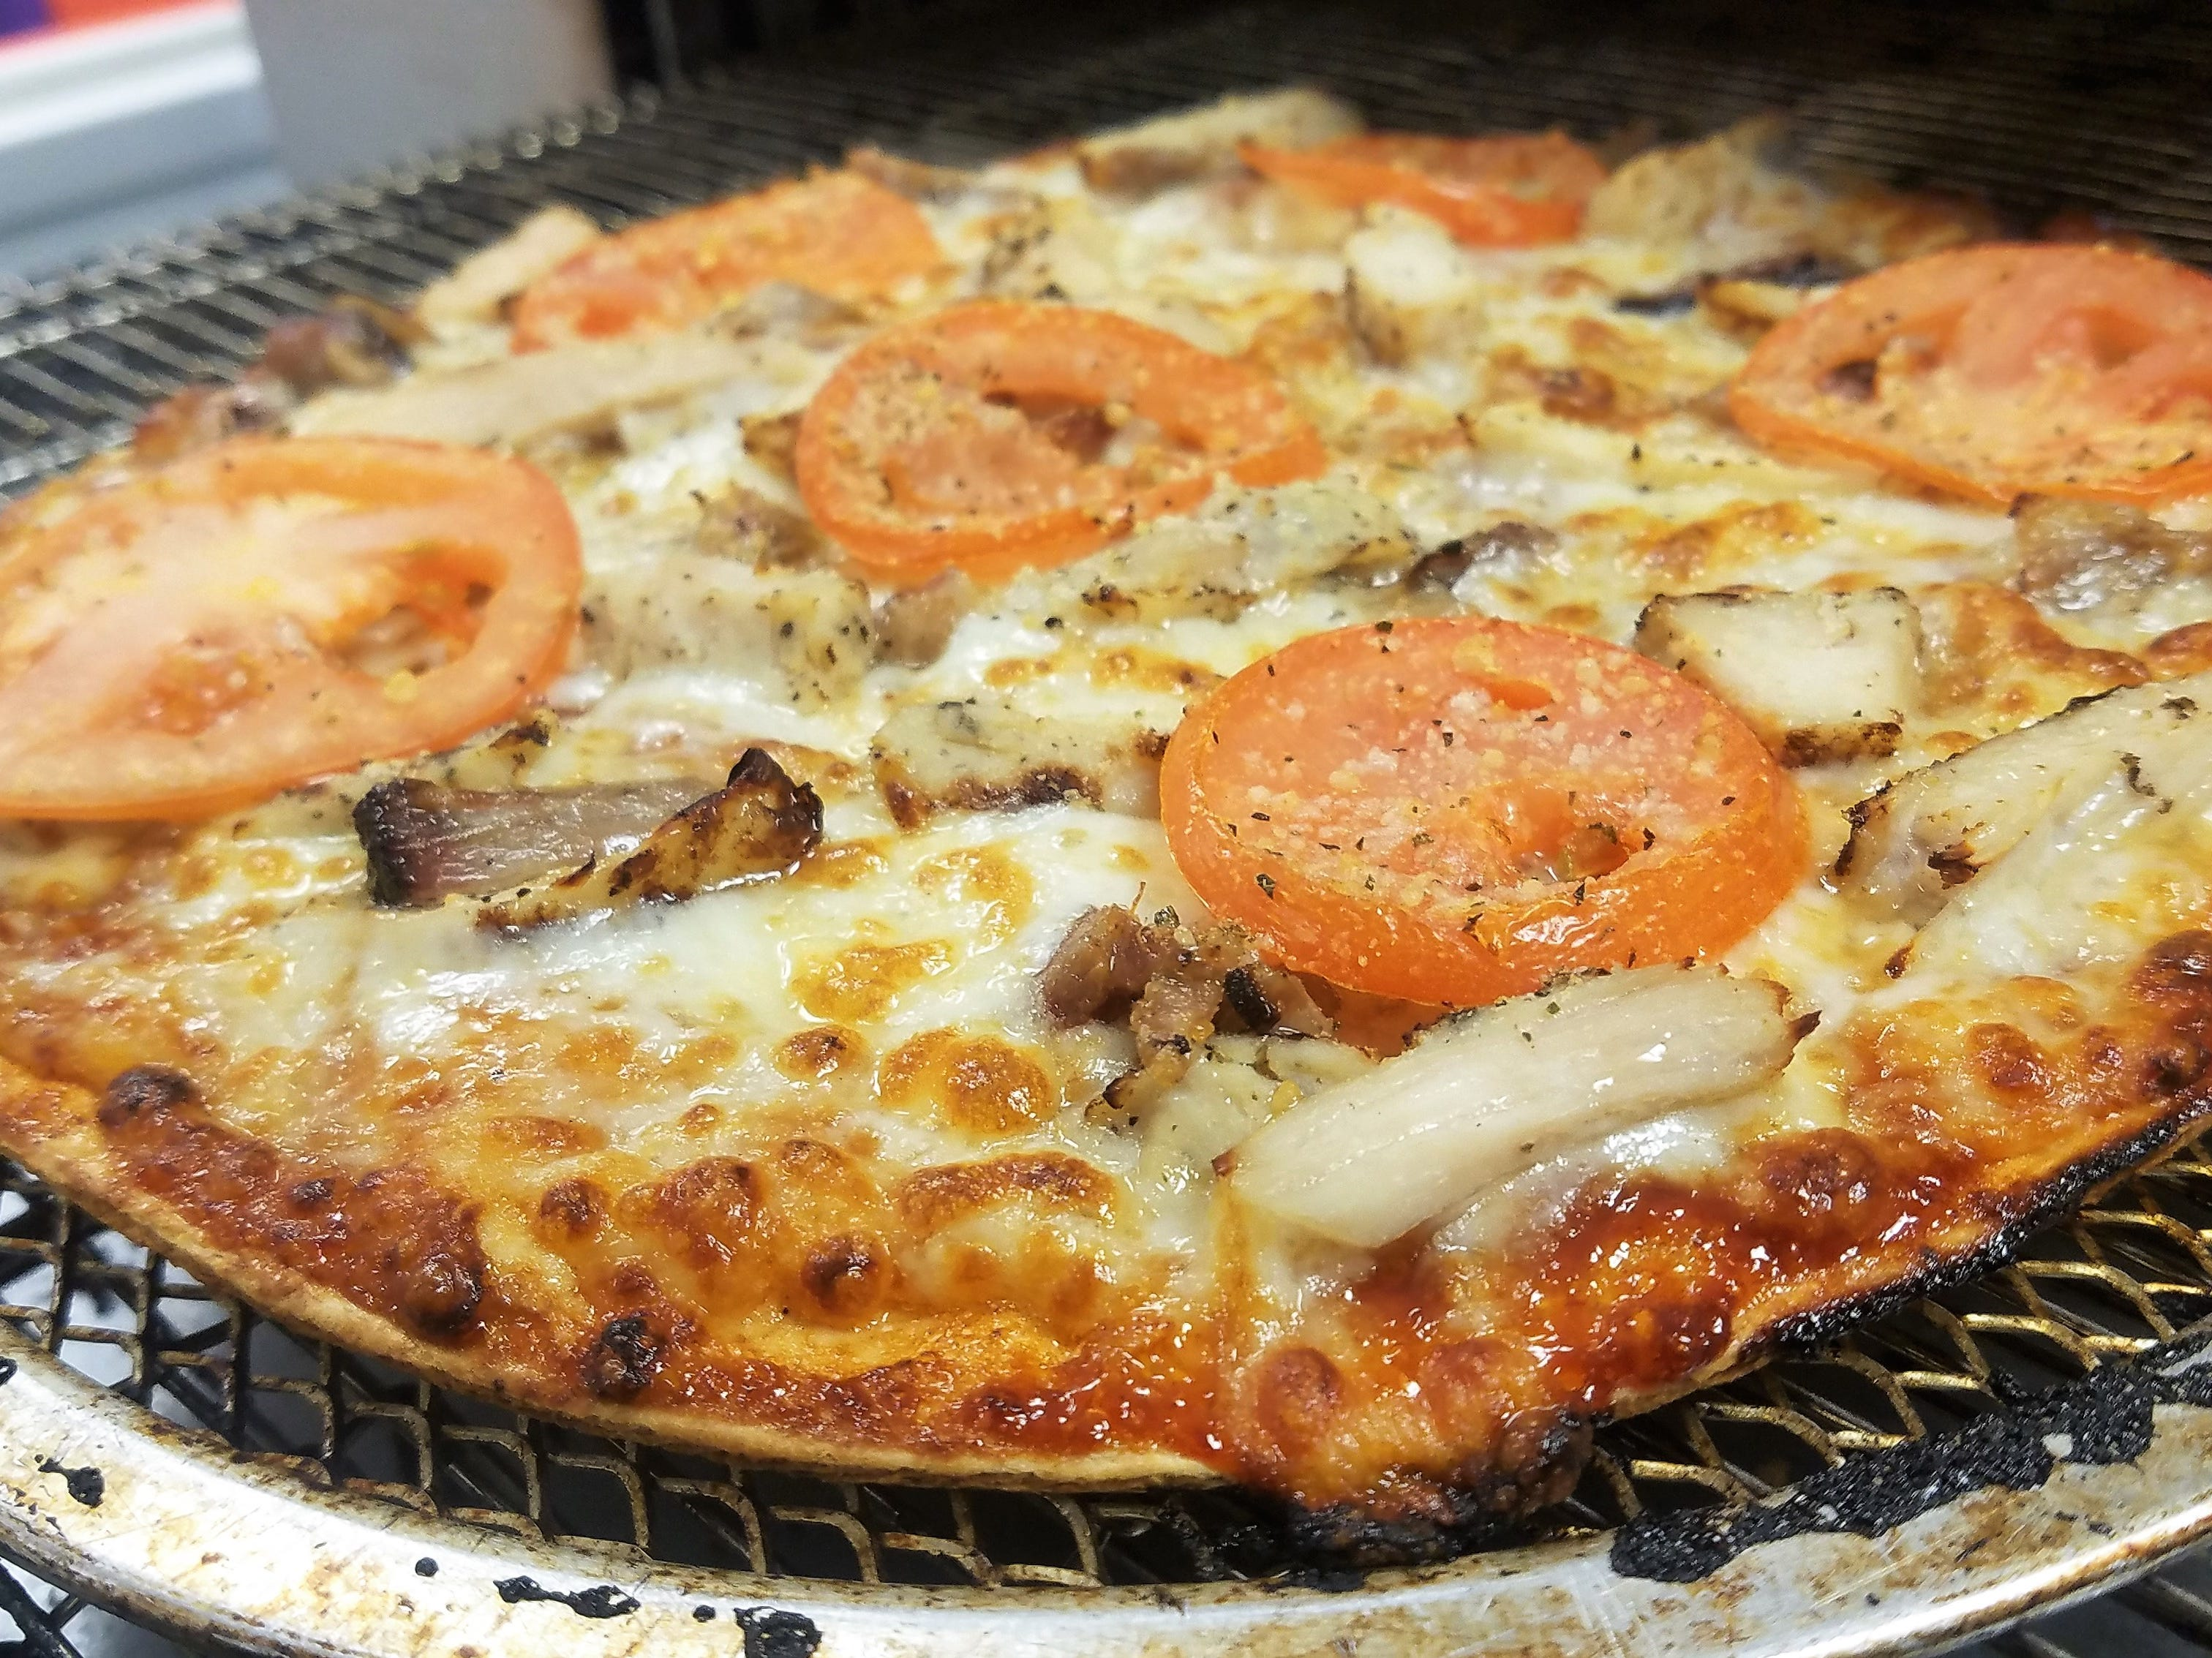 Choose from a large variety of meats and pizza toppings for one price at Keylee's Pizza and Creamery.